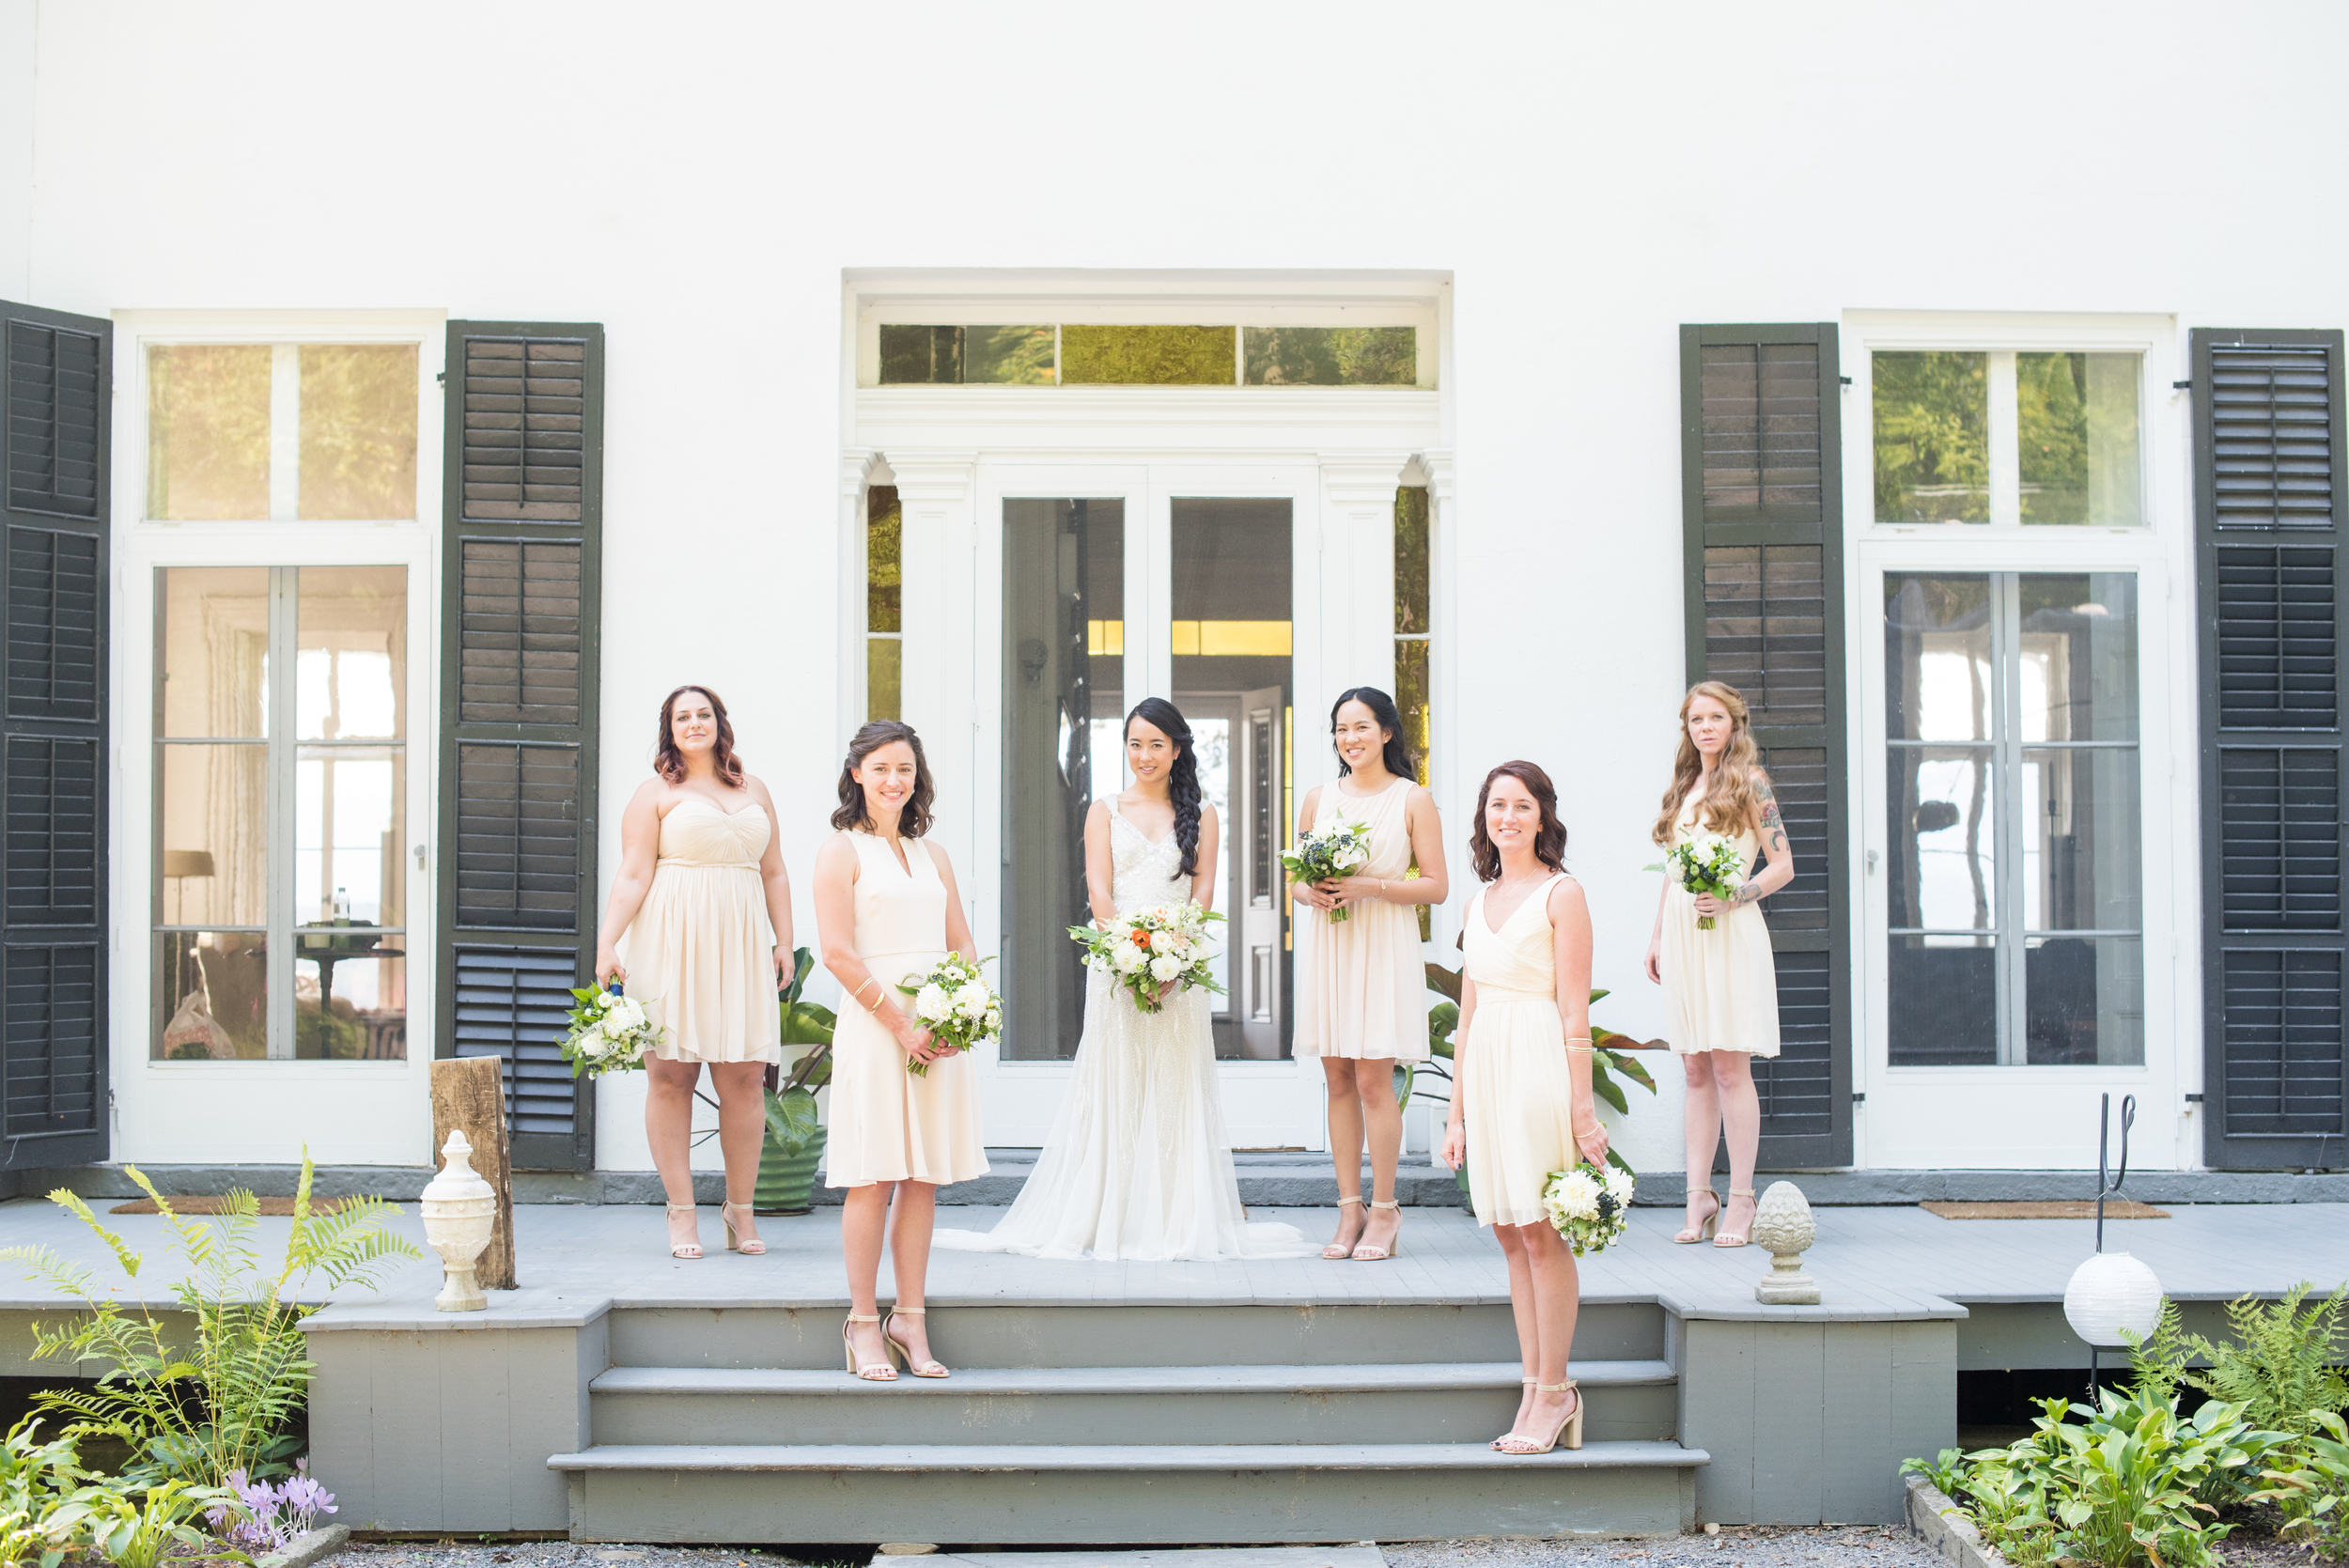 who what wear - Why One Wedding Planner Advises Against Bridesmaids